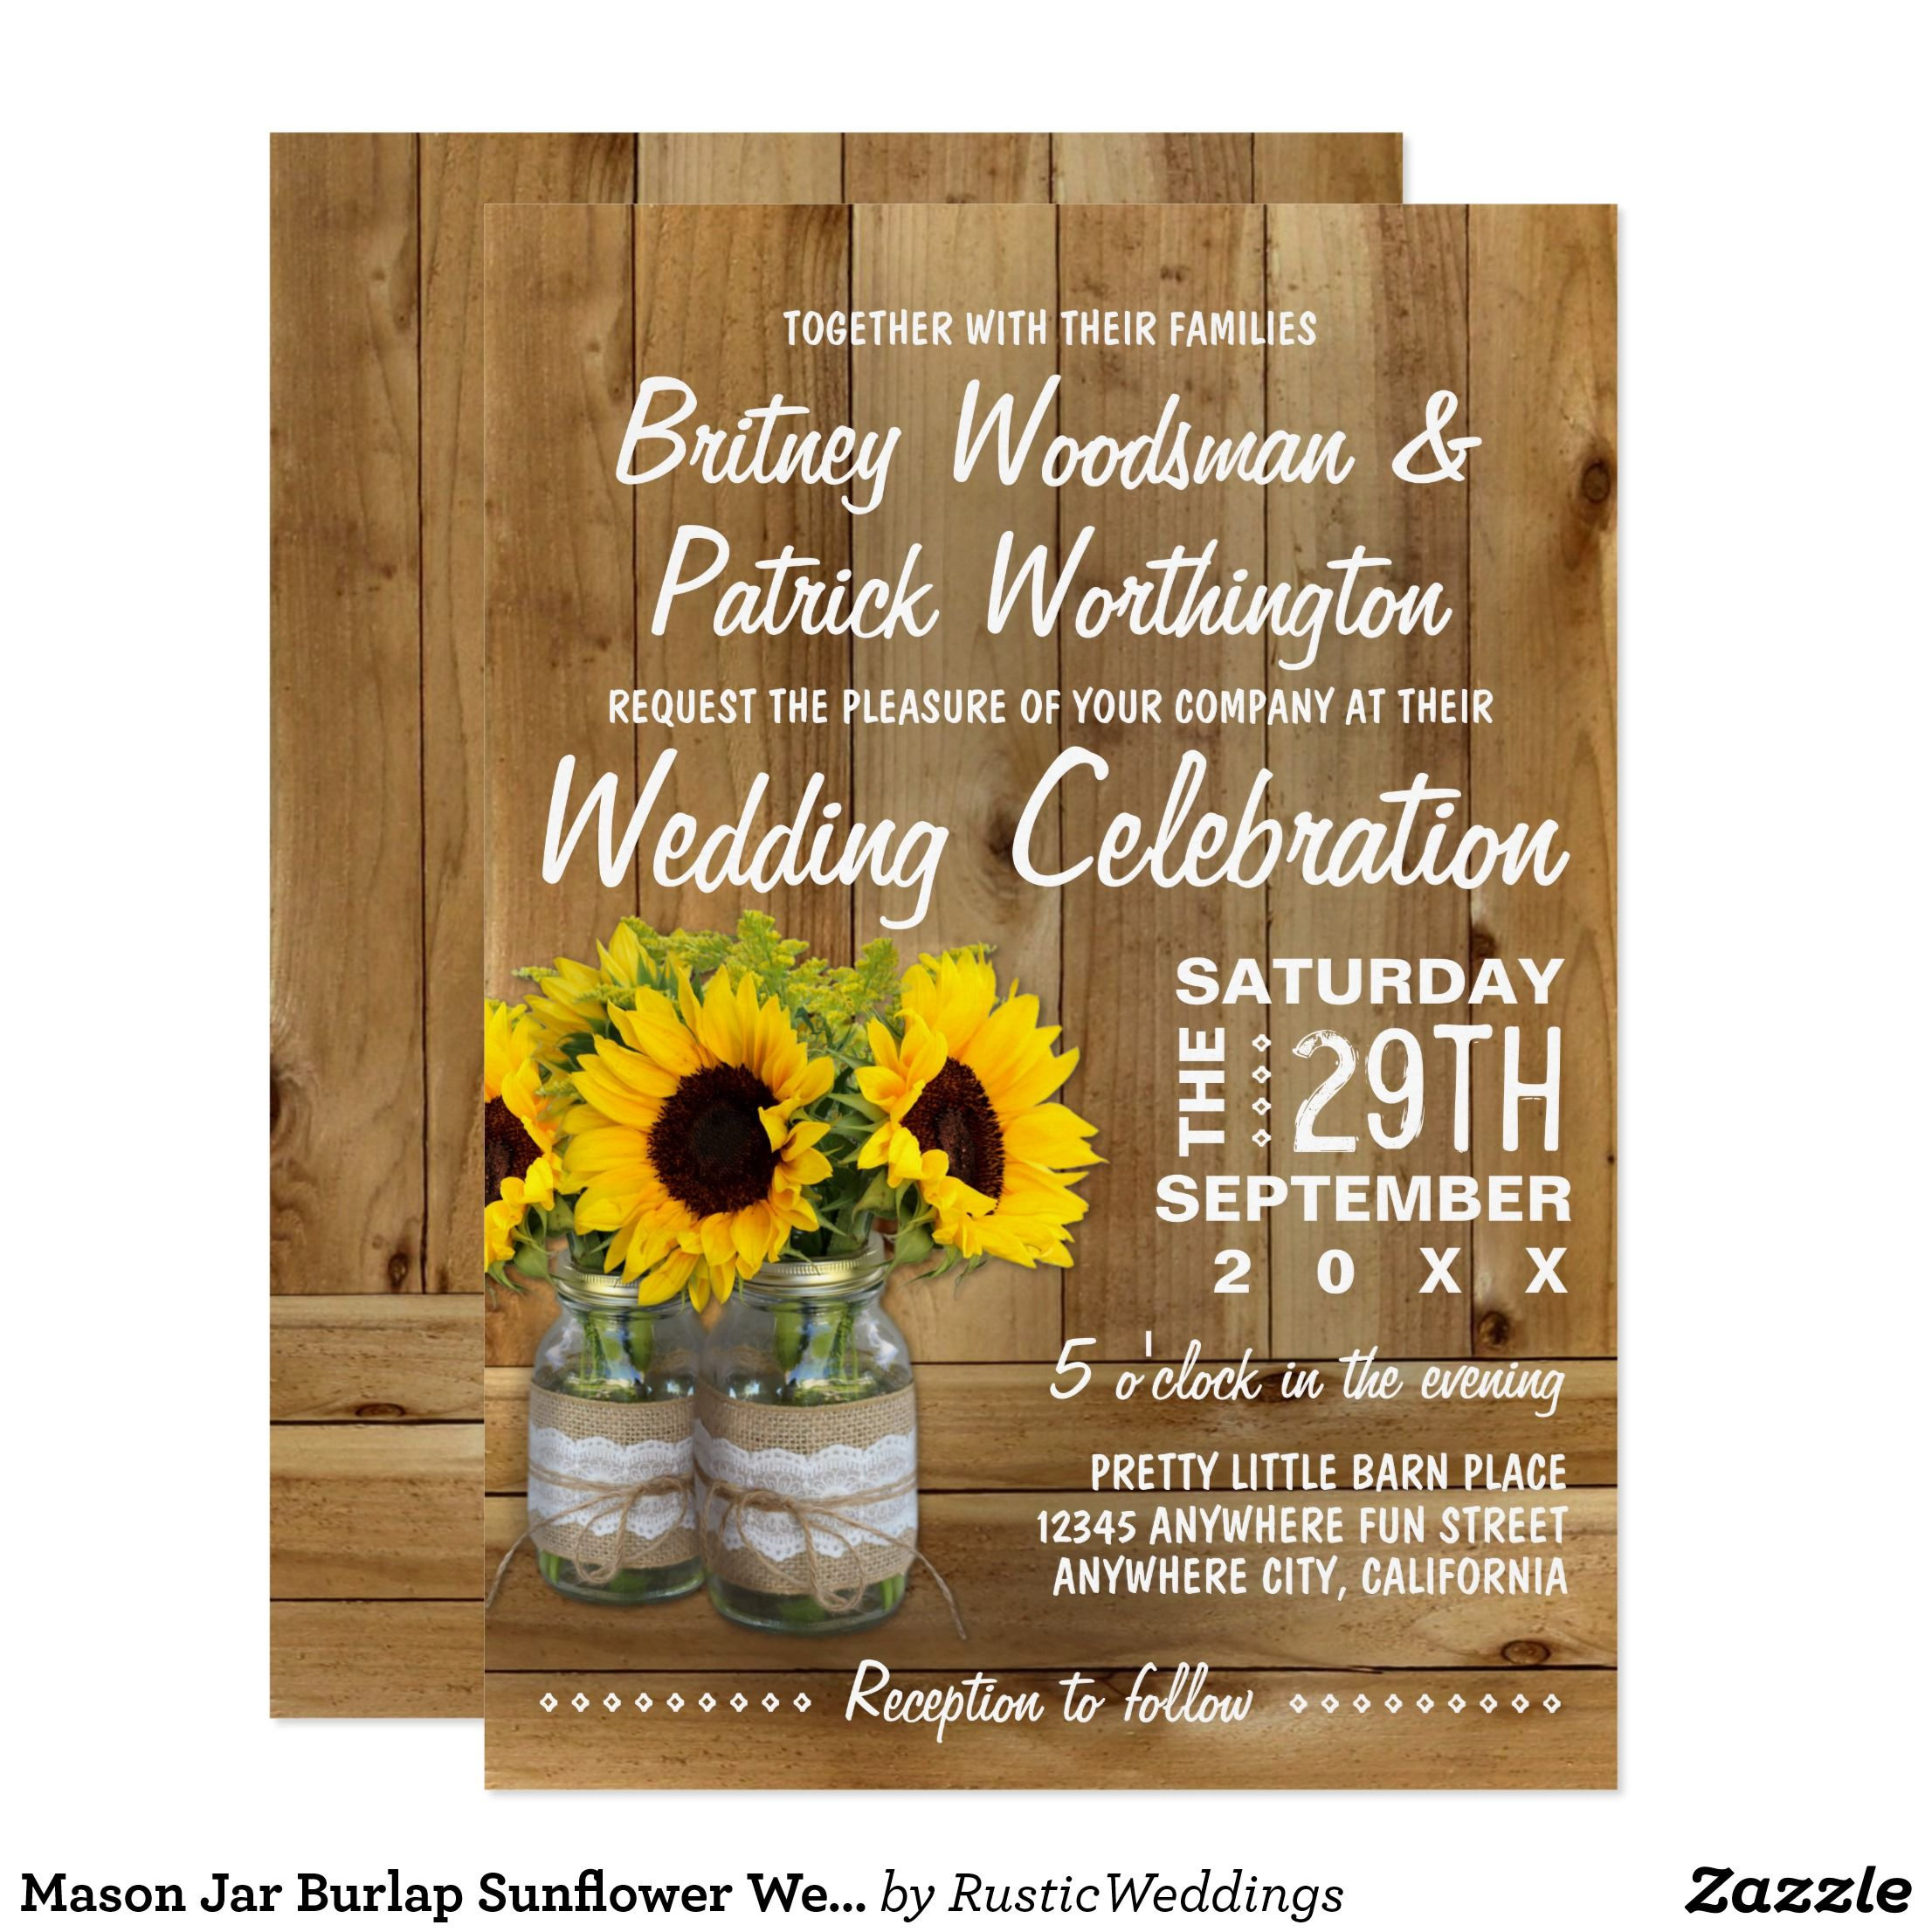 Mason Jar Burlap Sunflower Wedding Invitations Mason Jar Burlap